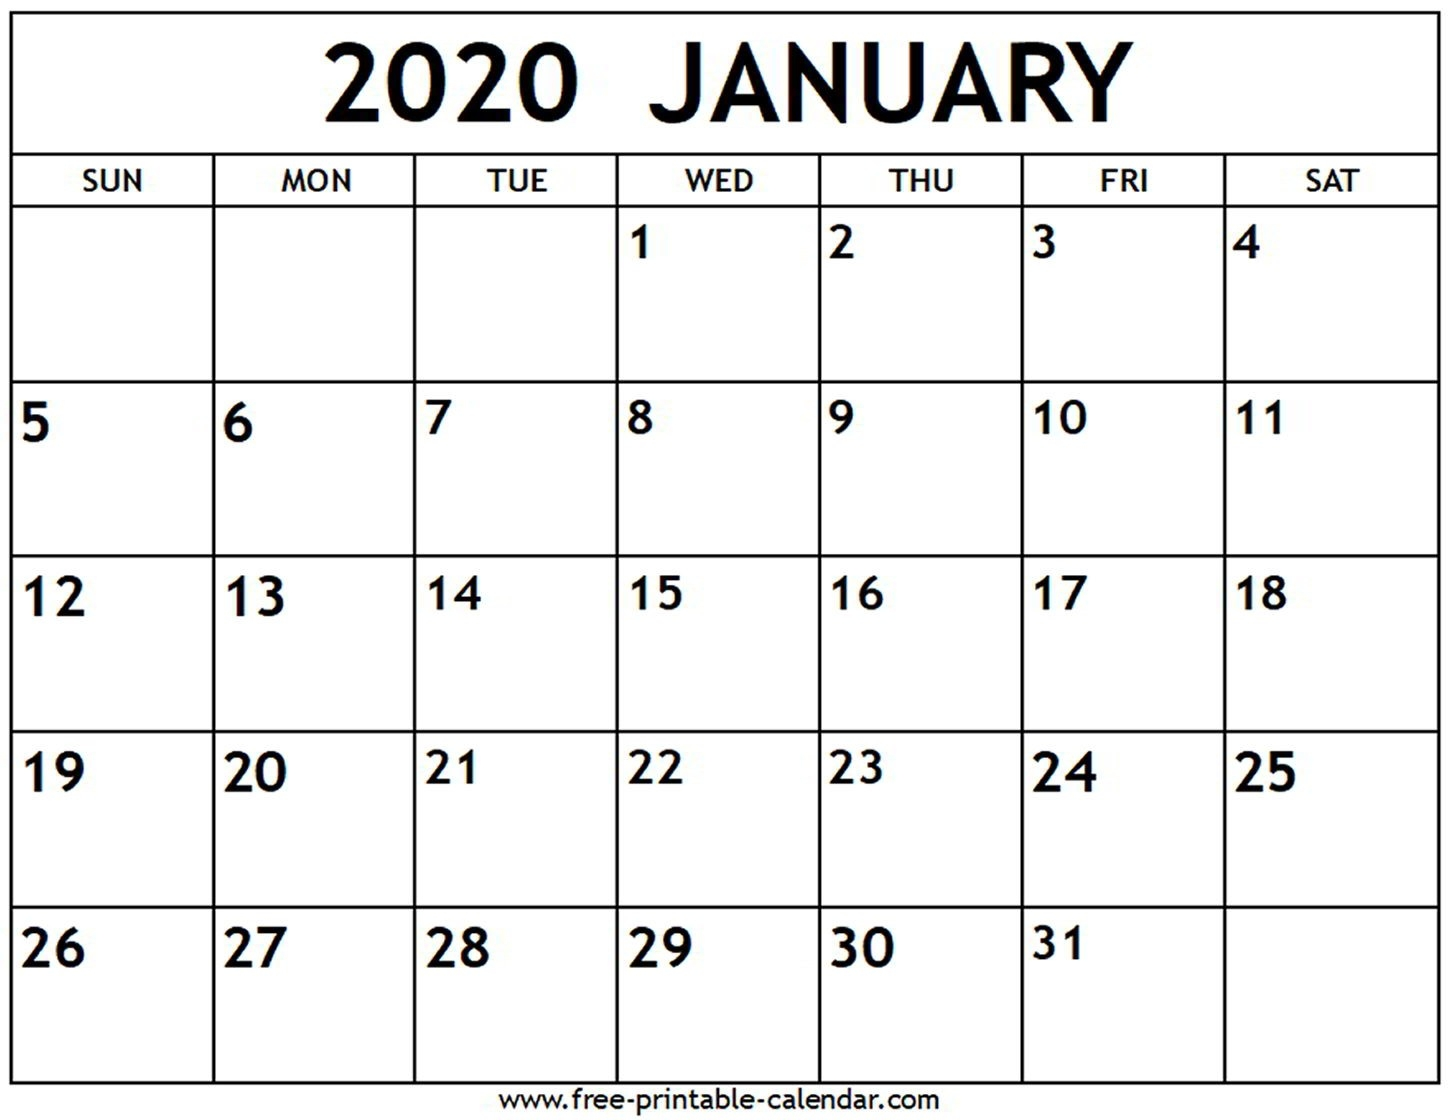 January 2020 Calendar - Free-Printable-Calendar-January 2020 Calendar With Holidays